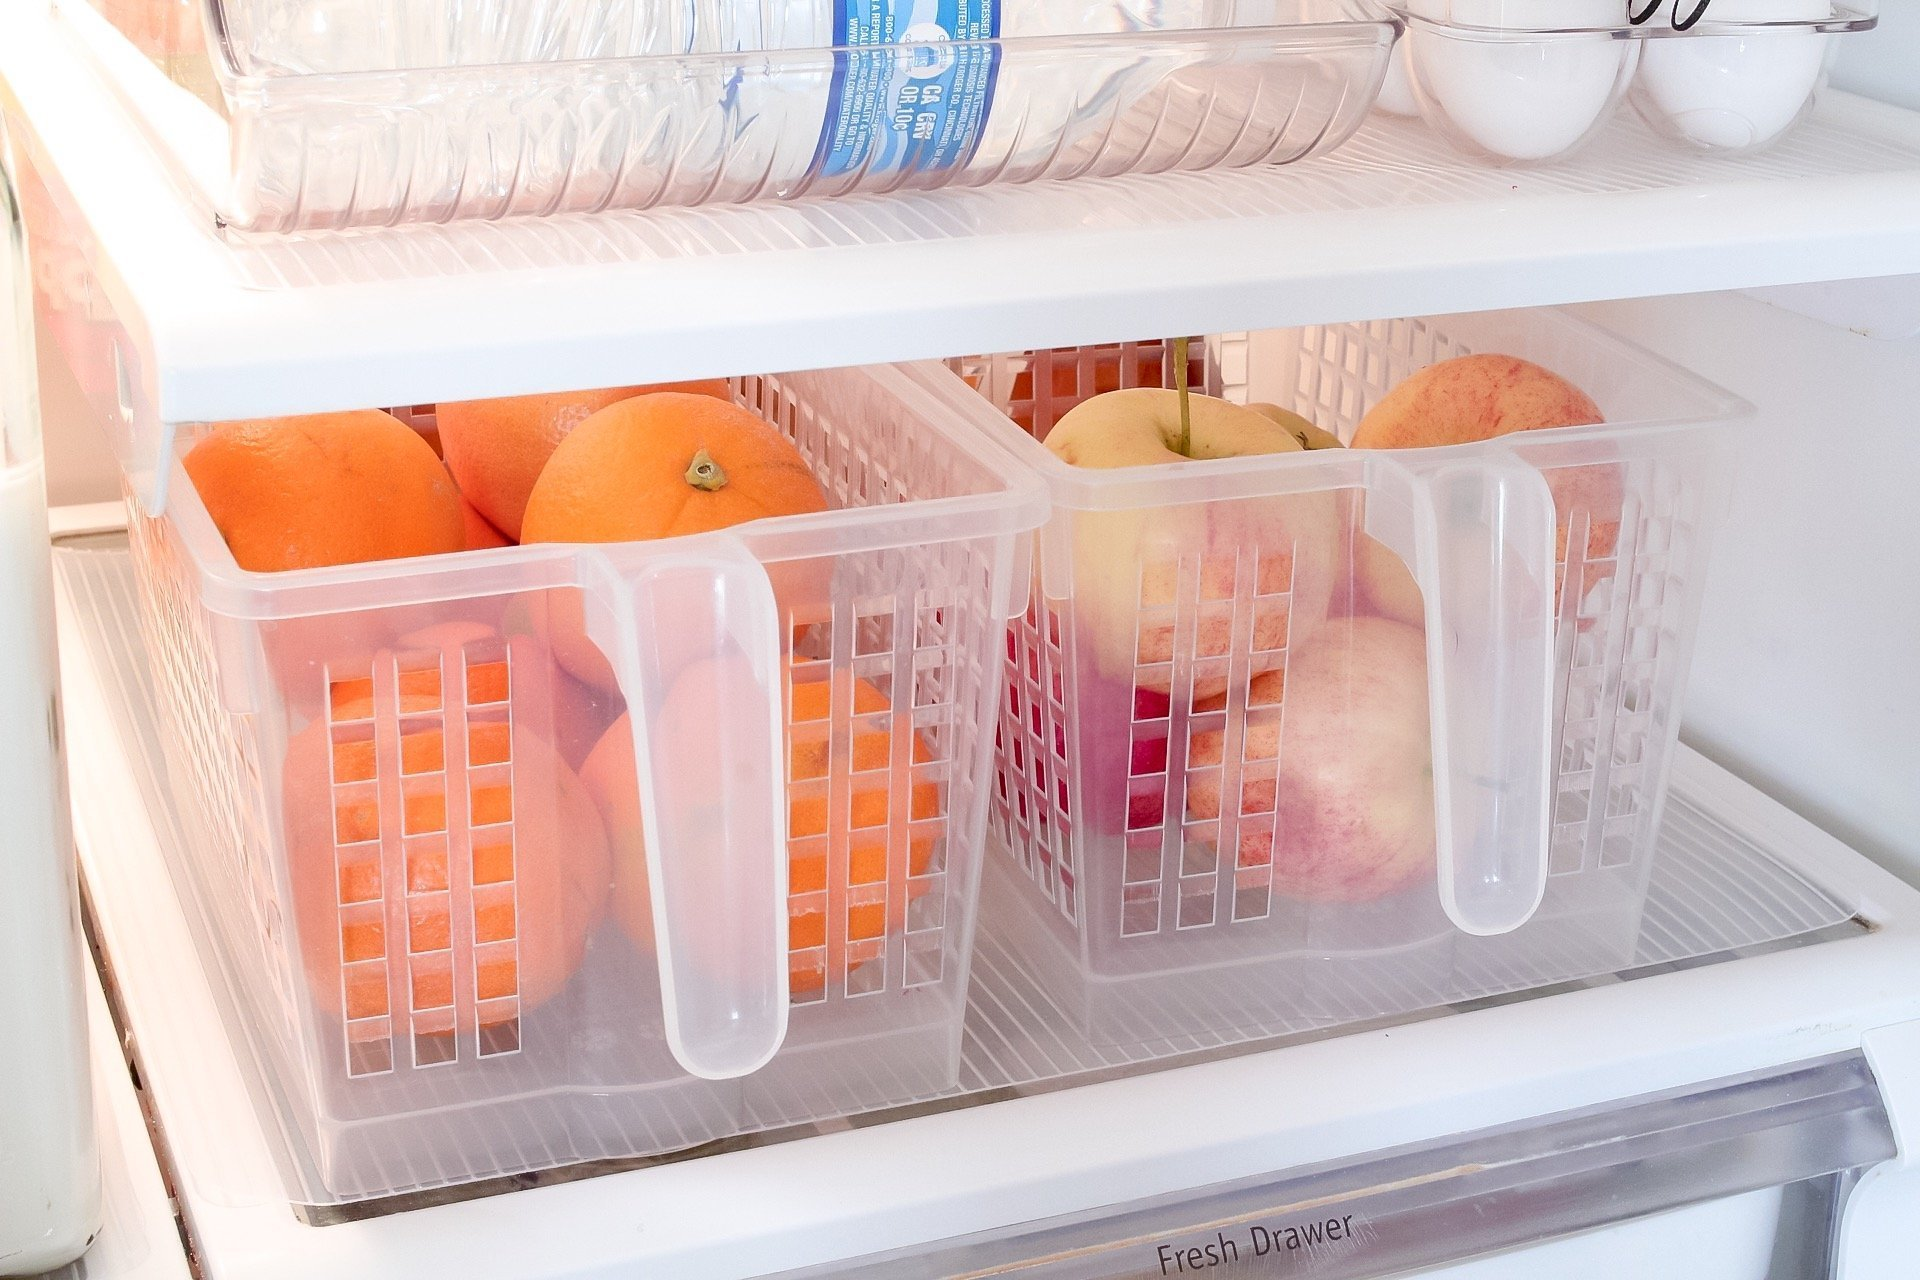 Apples and oranges in small storage baskets inside our fridge with handles for easy pull-out and grab